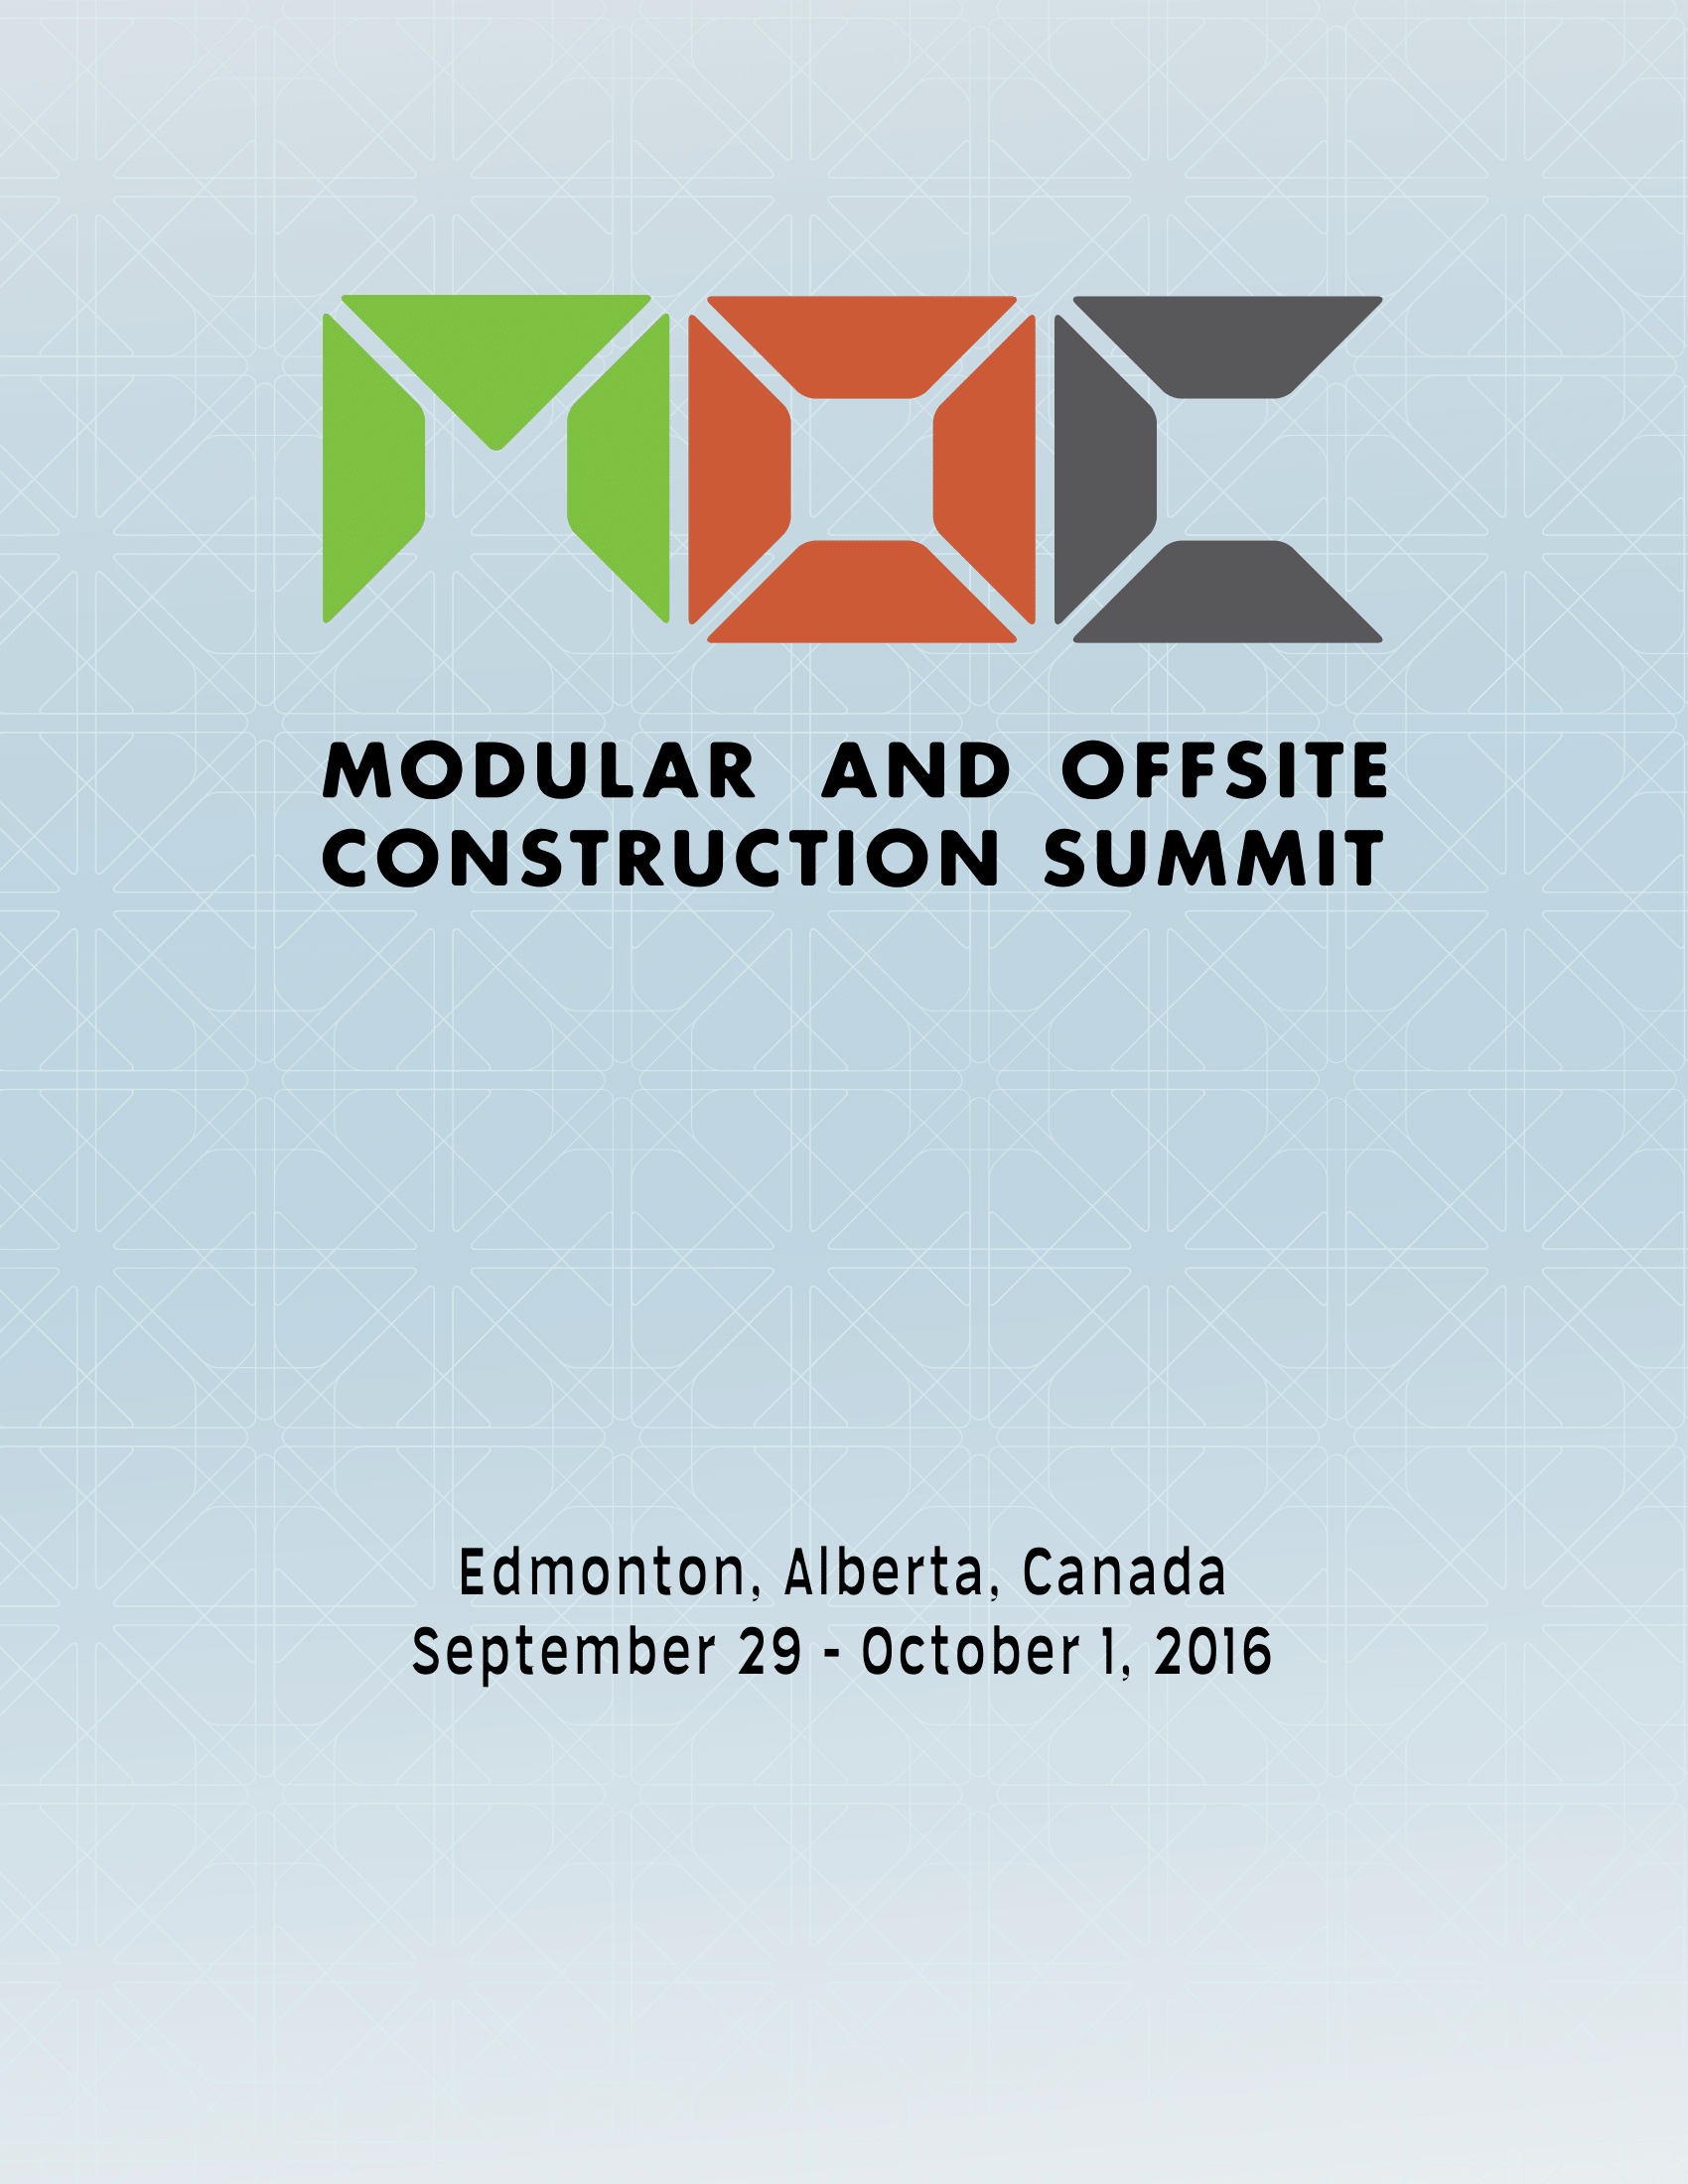 2016 Modular and Offsite Construction Summit Proceedings